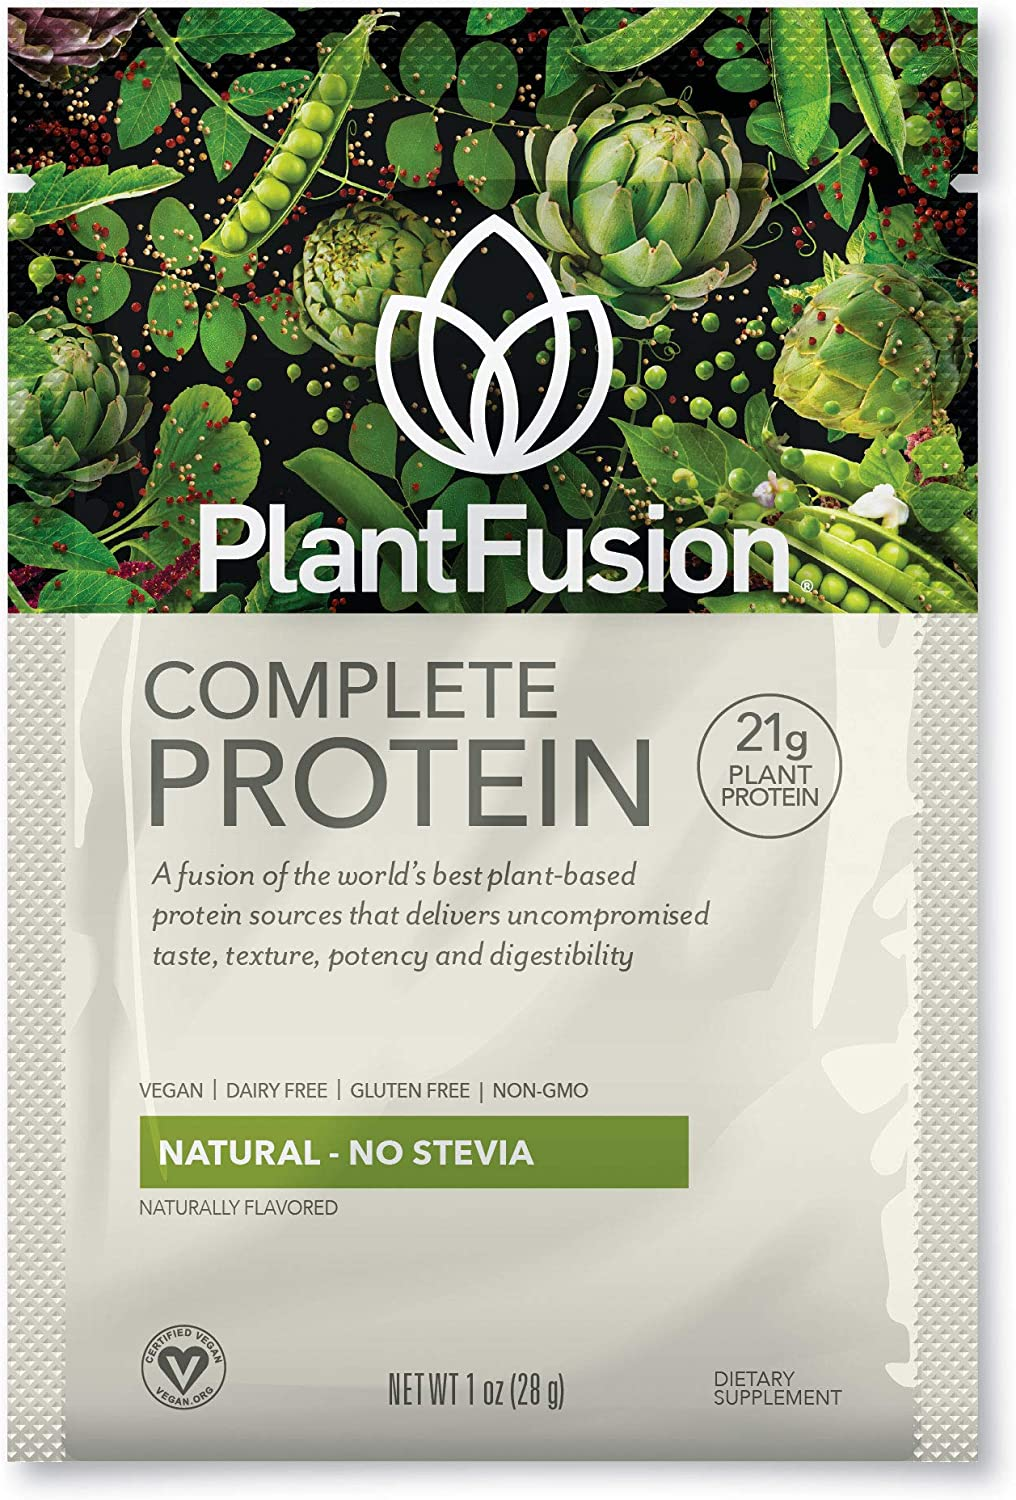 PlantFusion Complete Plant Based Protein Powder, Natural - No Stevia, 30 g Single Serving Packets, 12 Count, Gluten Free, Vegan, Non-GMO, Packaging May Vary, 1 Ounce (Pack of 12)